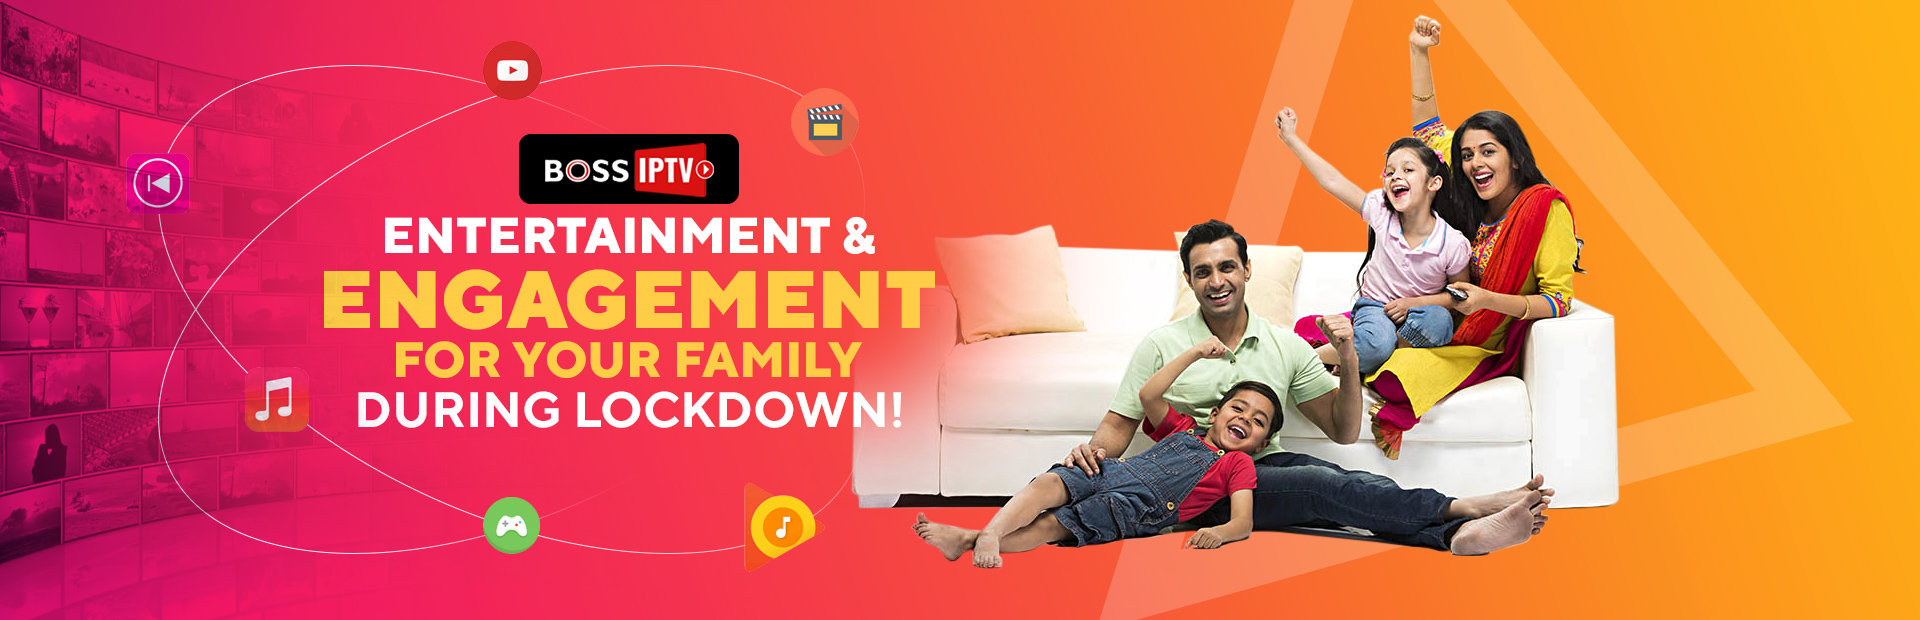 Entertainment & Engagement for your family during lockdown!